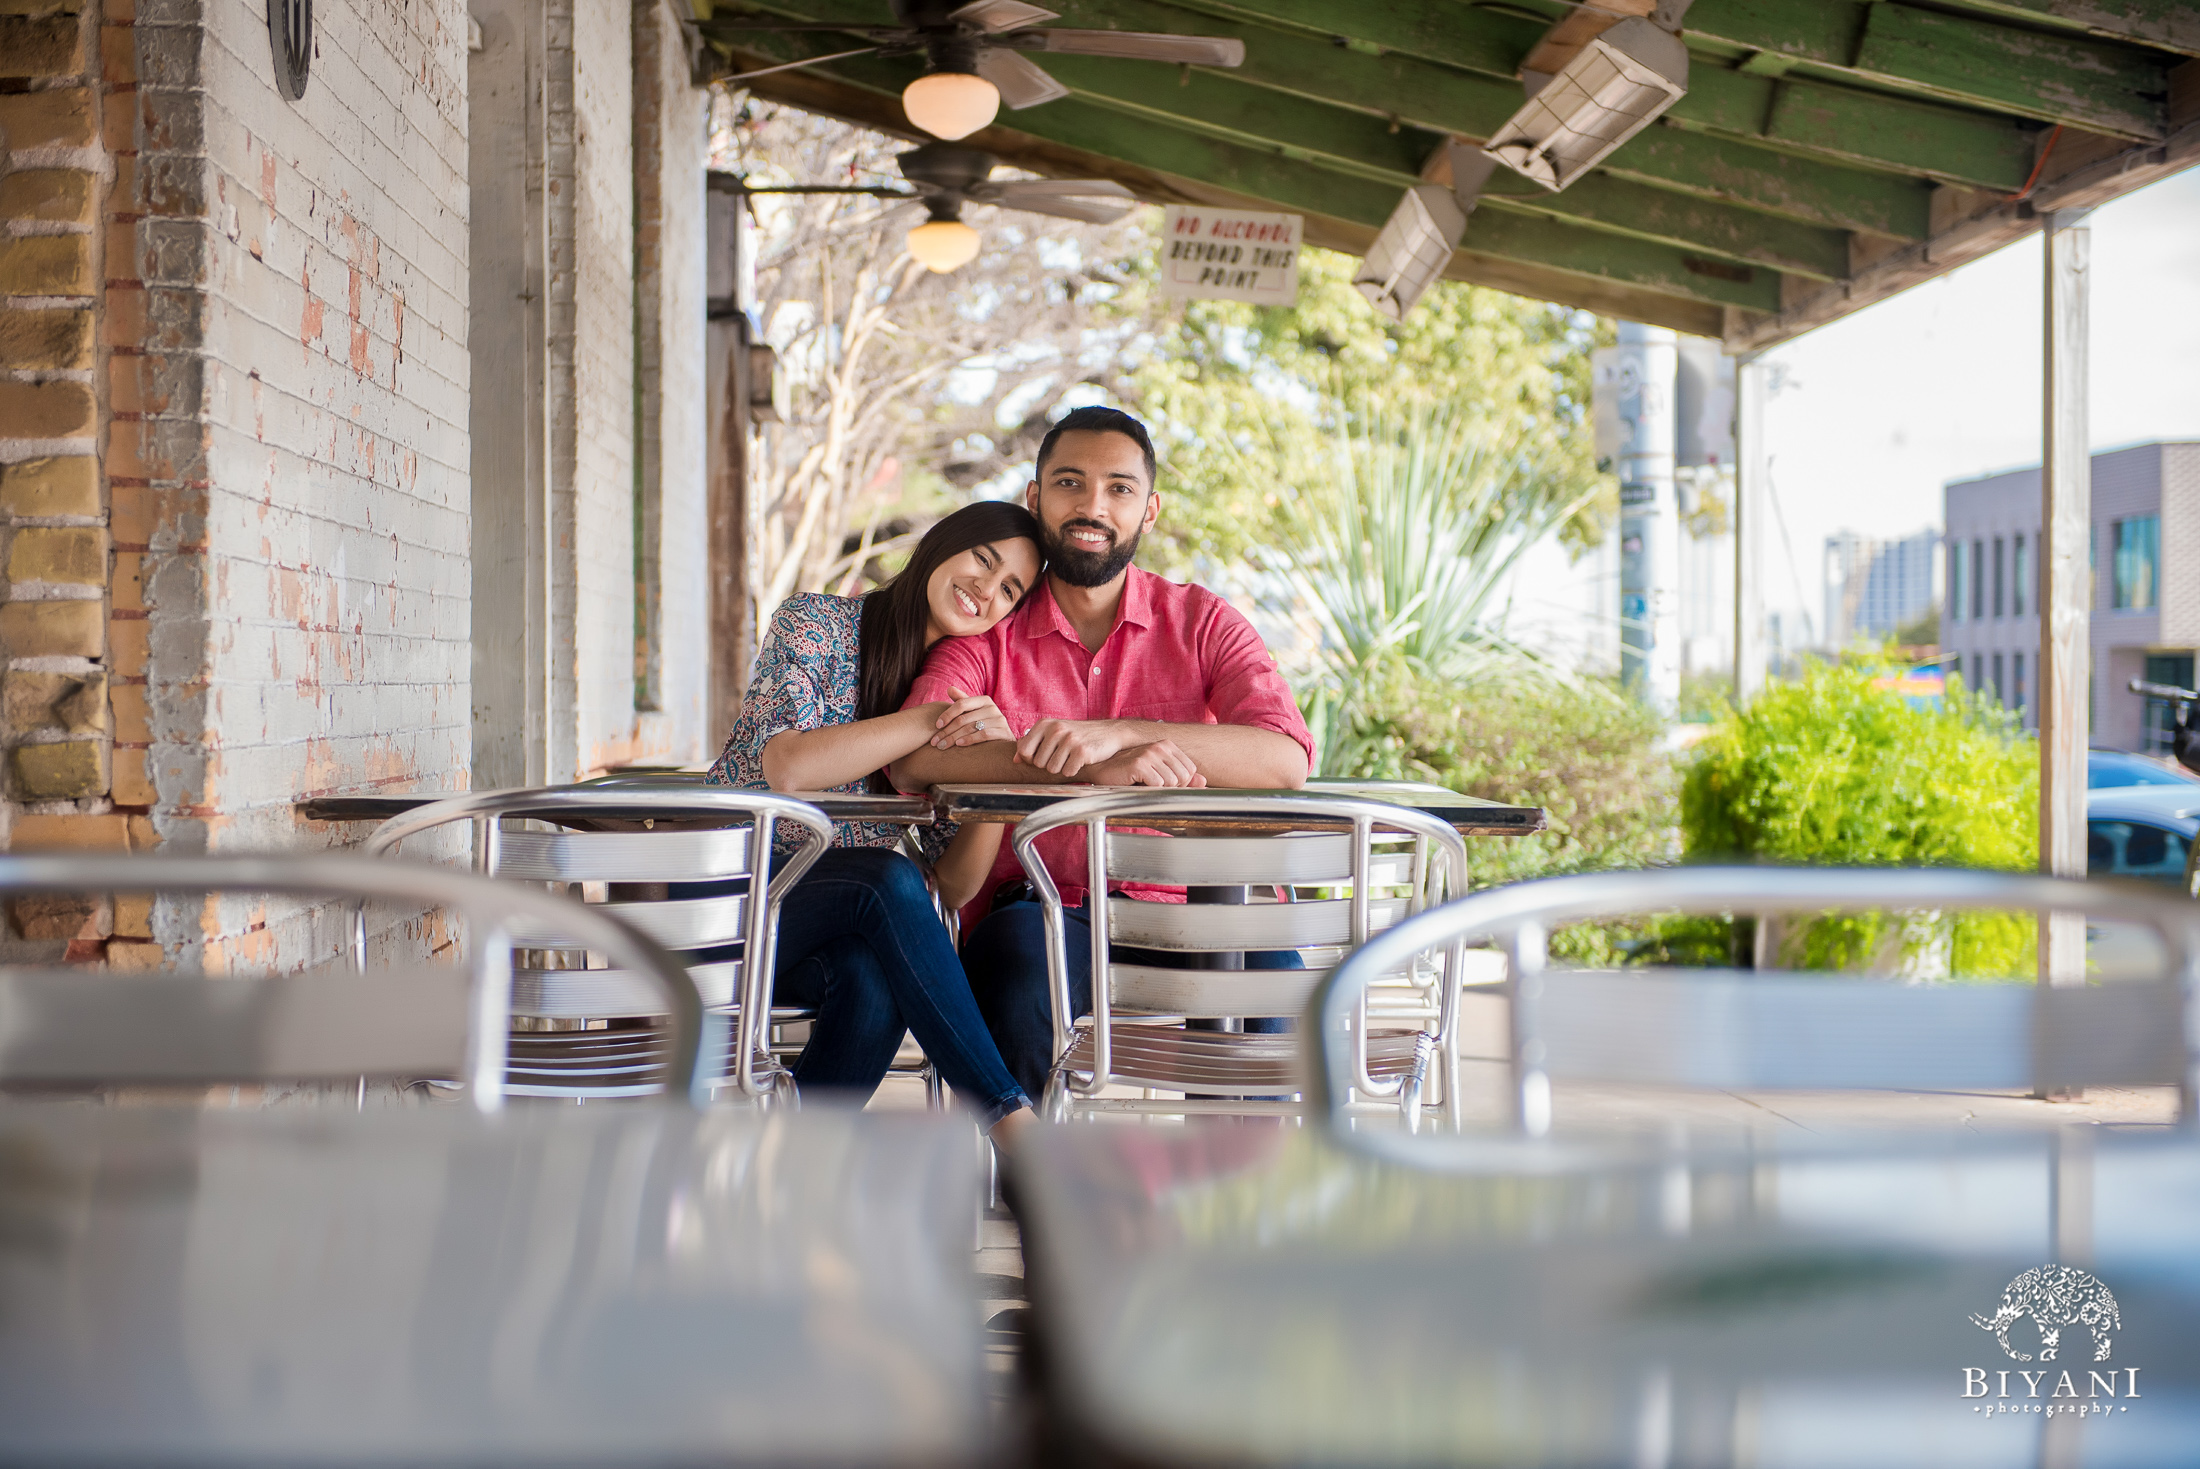 Indian couple sitting down at a restaurant table during their engagement photo shoot in South Congress Austin, Tx. on a sunny day